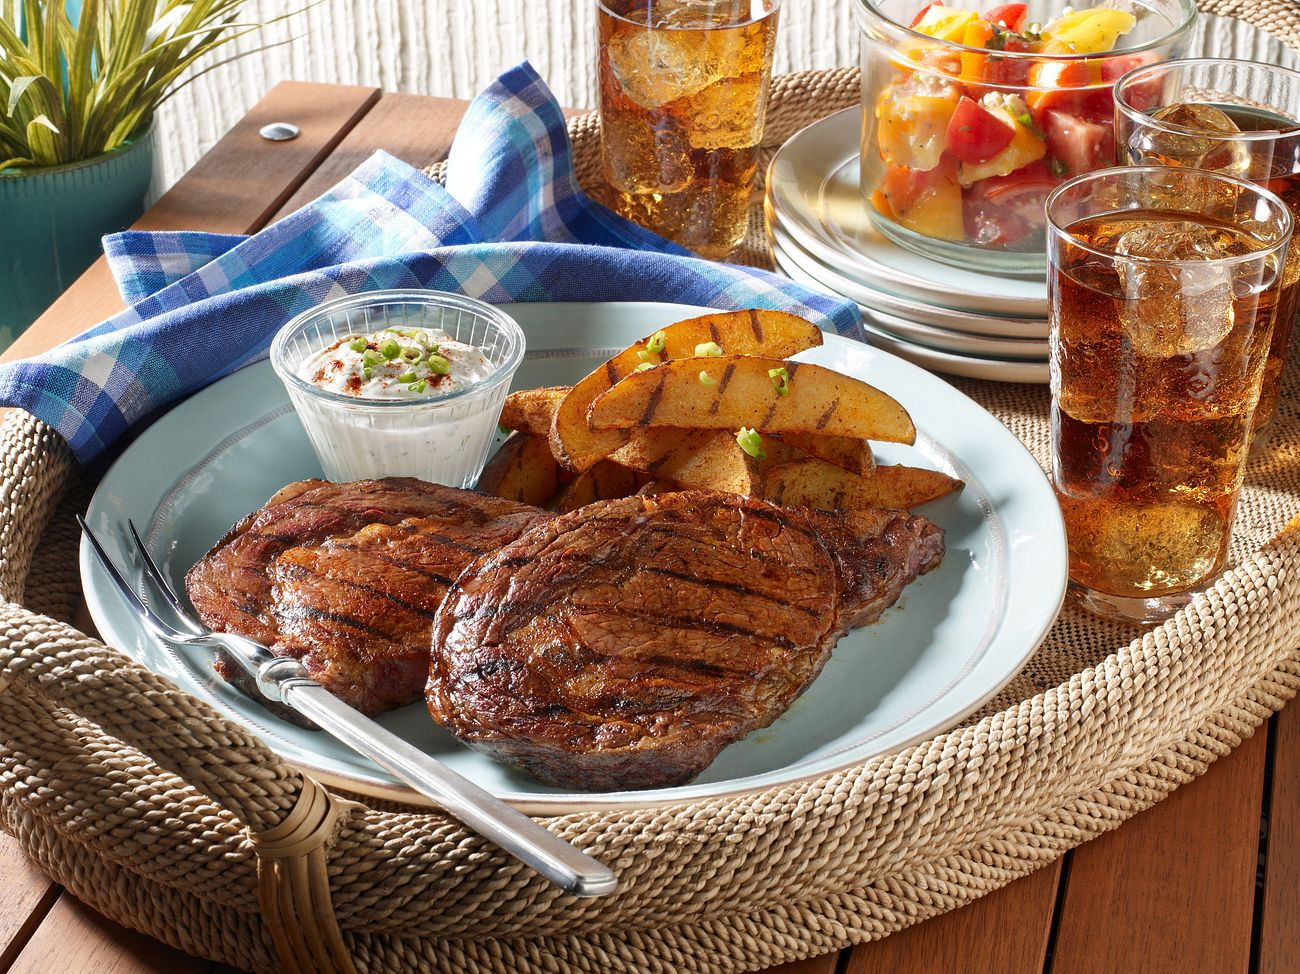 grilled-ribye-steaks-and-potatoes-with-smoky-paprika-rub-horizontal